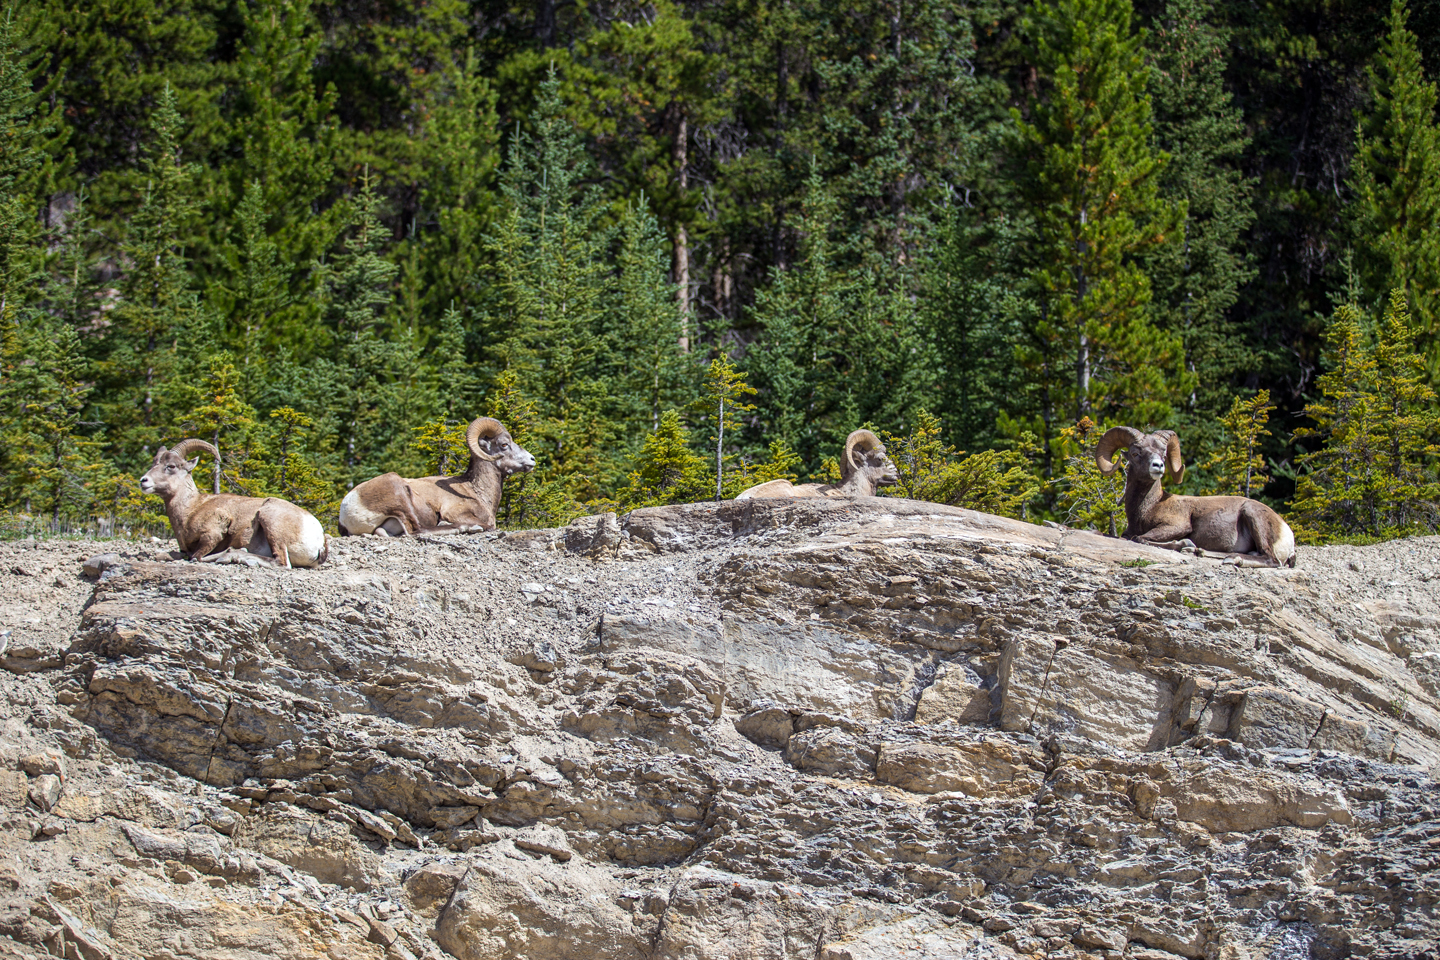 icefields-parkway-bighorn-sheep-roadside